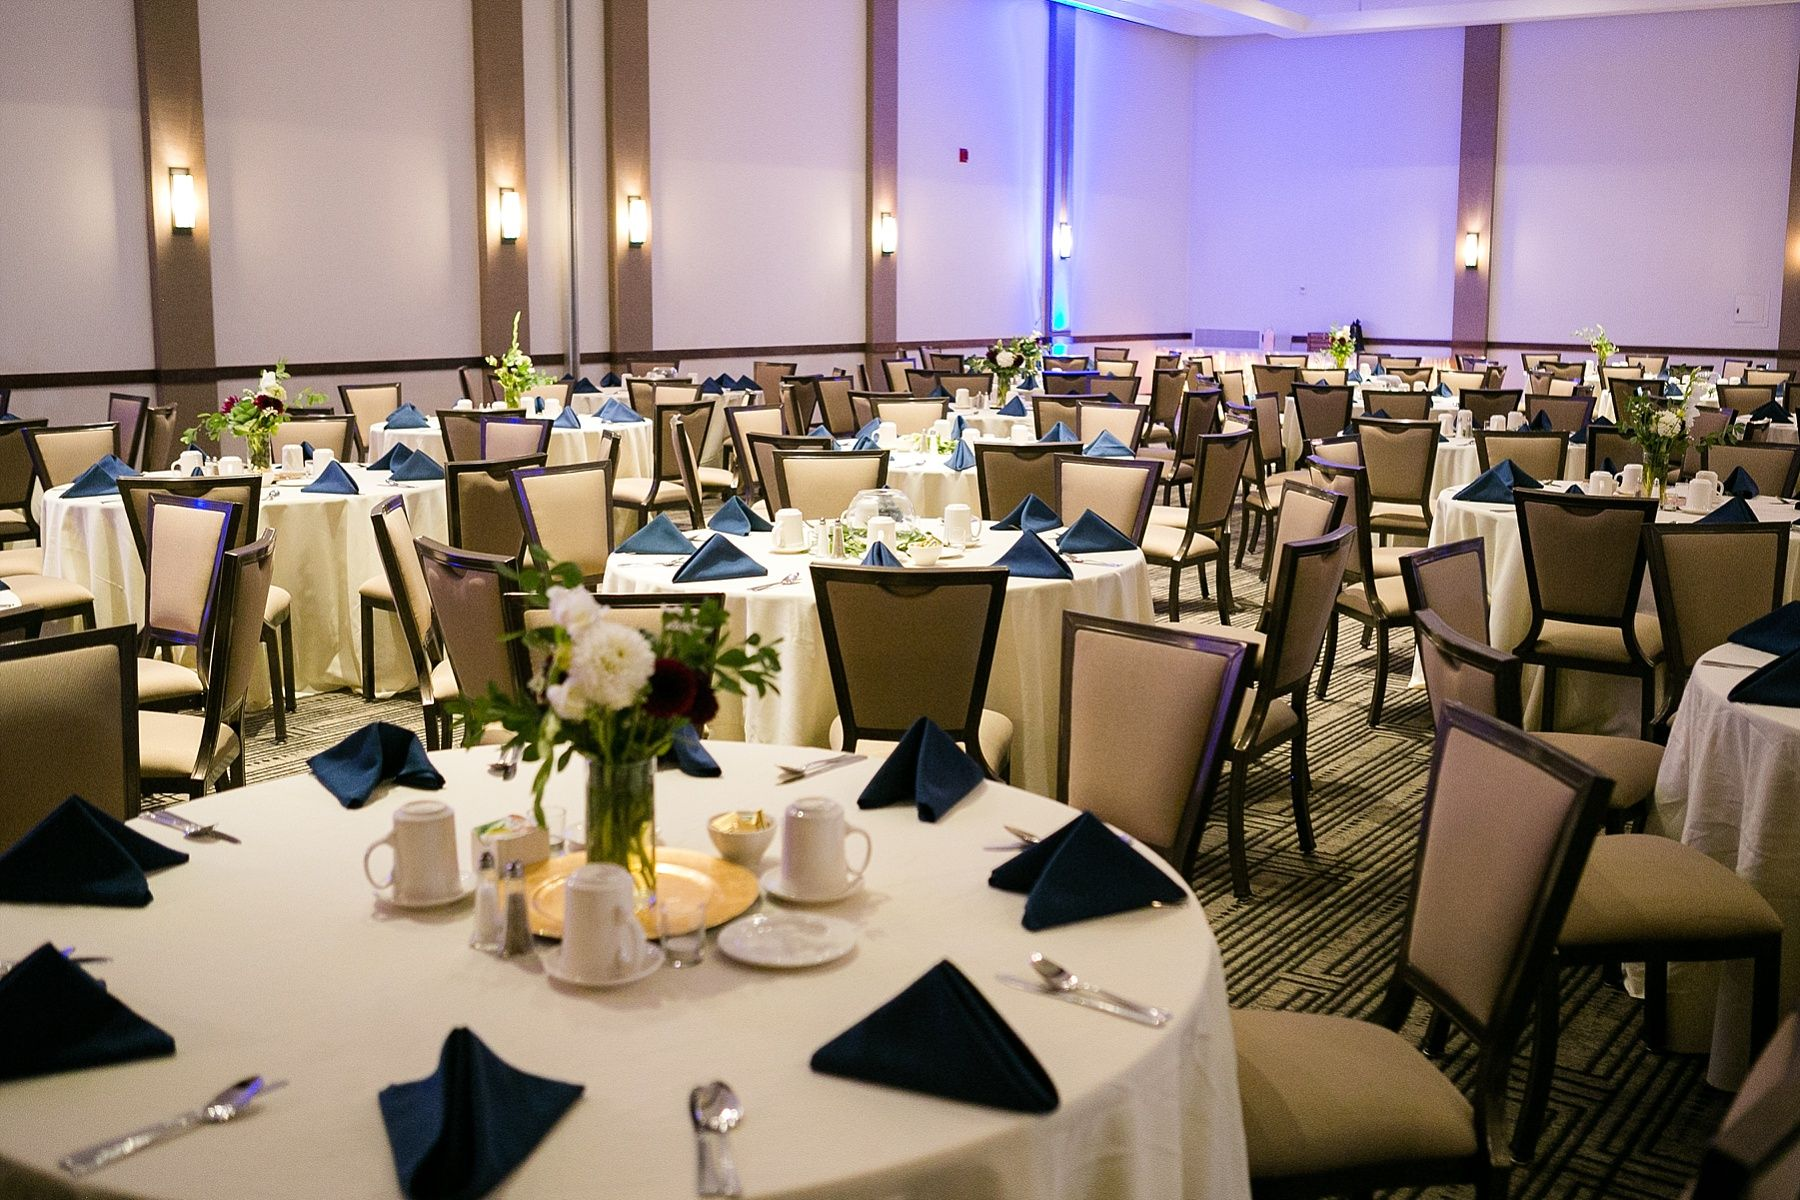 The Lismore Hotel Ballroom In Eau Claire Wi Set For A Wedding